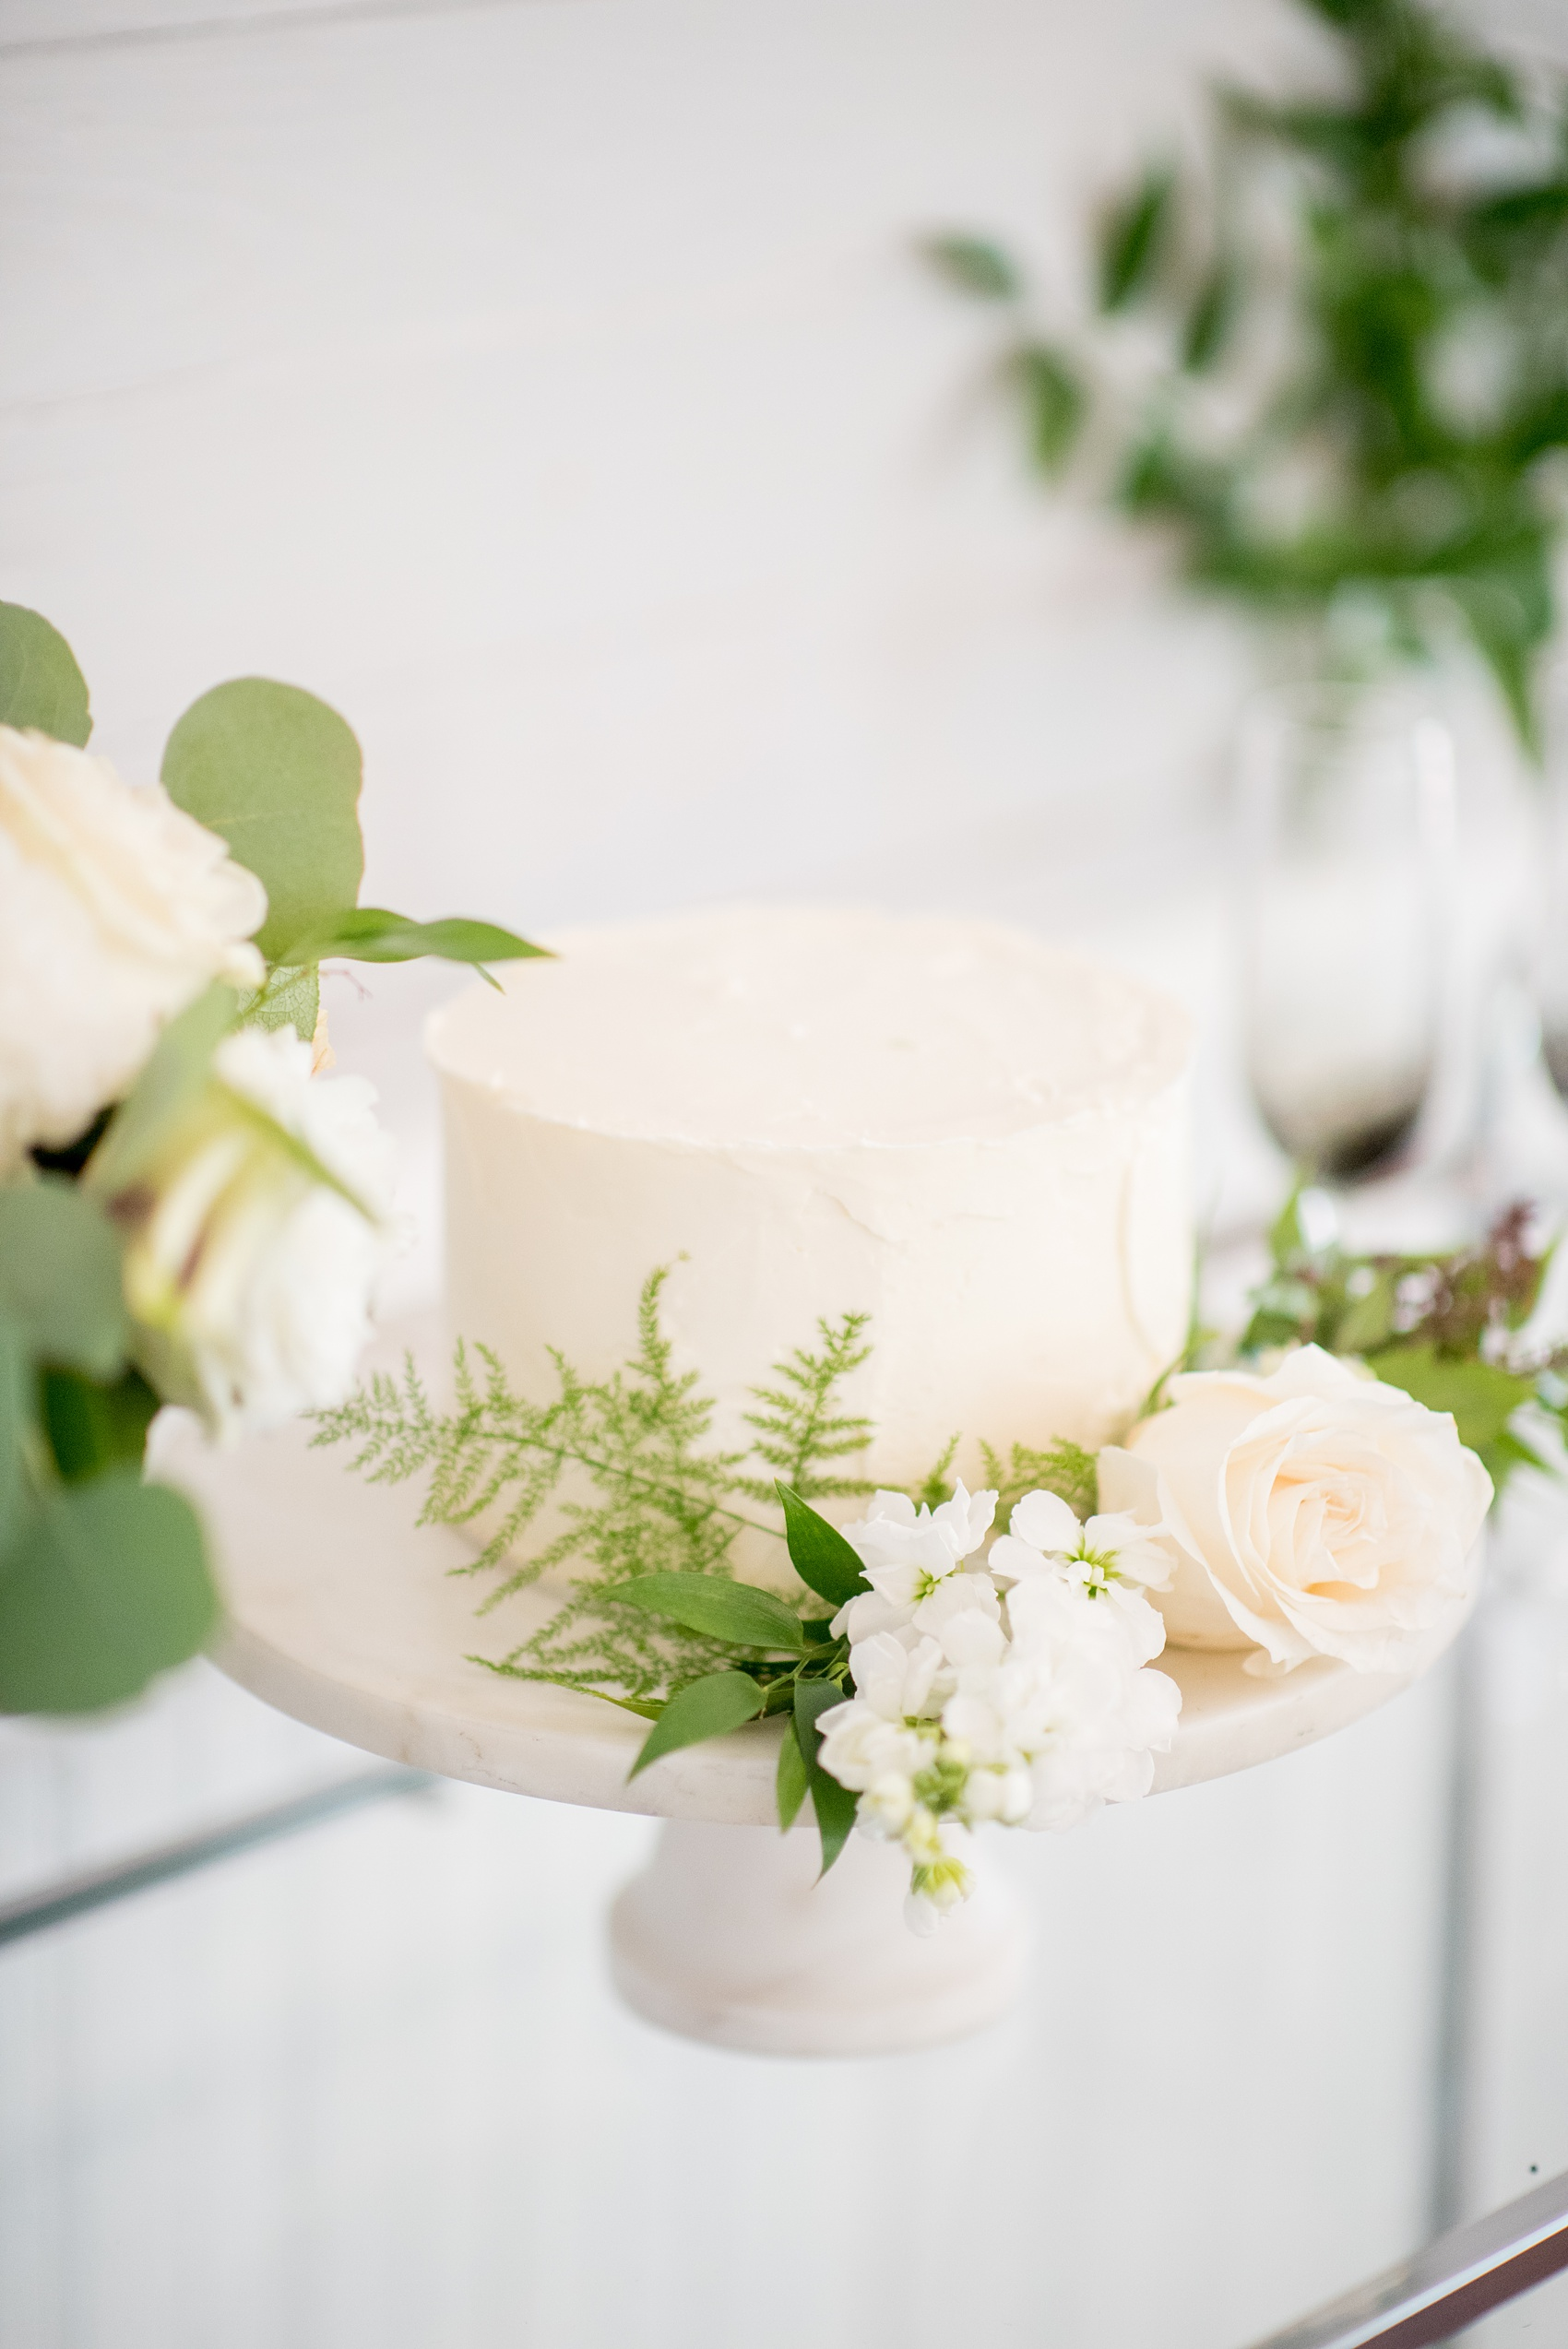 Mikkel Paige Photography pictures of a wedding at Leslie-Alford Mim's House in North Carolina for a Mad Dash Weddings event. Photo of the petite red-velvet, white frosted wedding cake adorned with flowers.